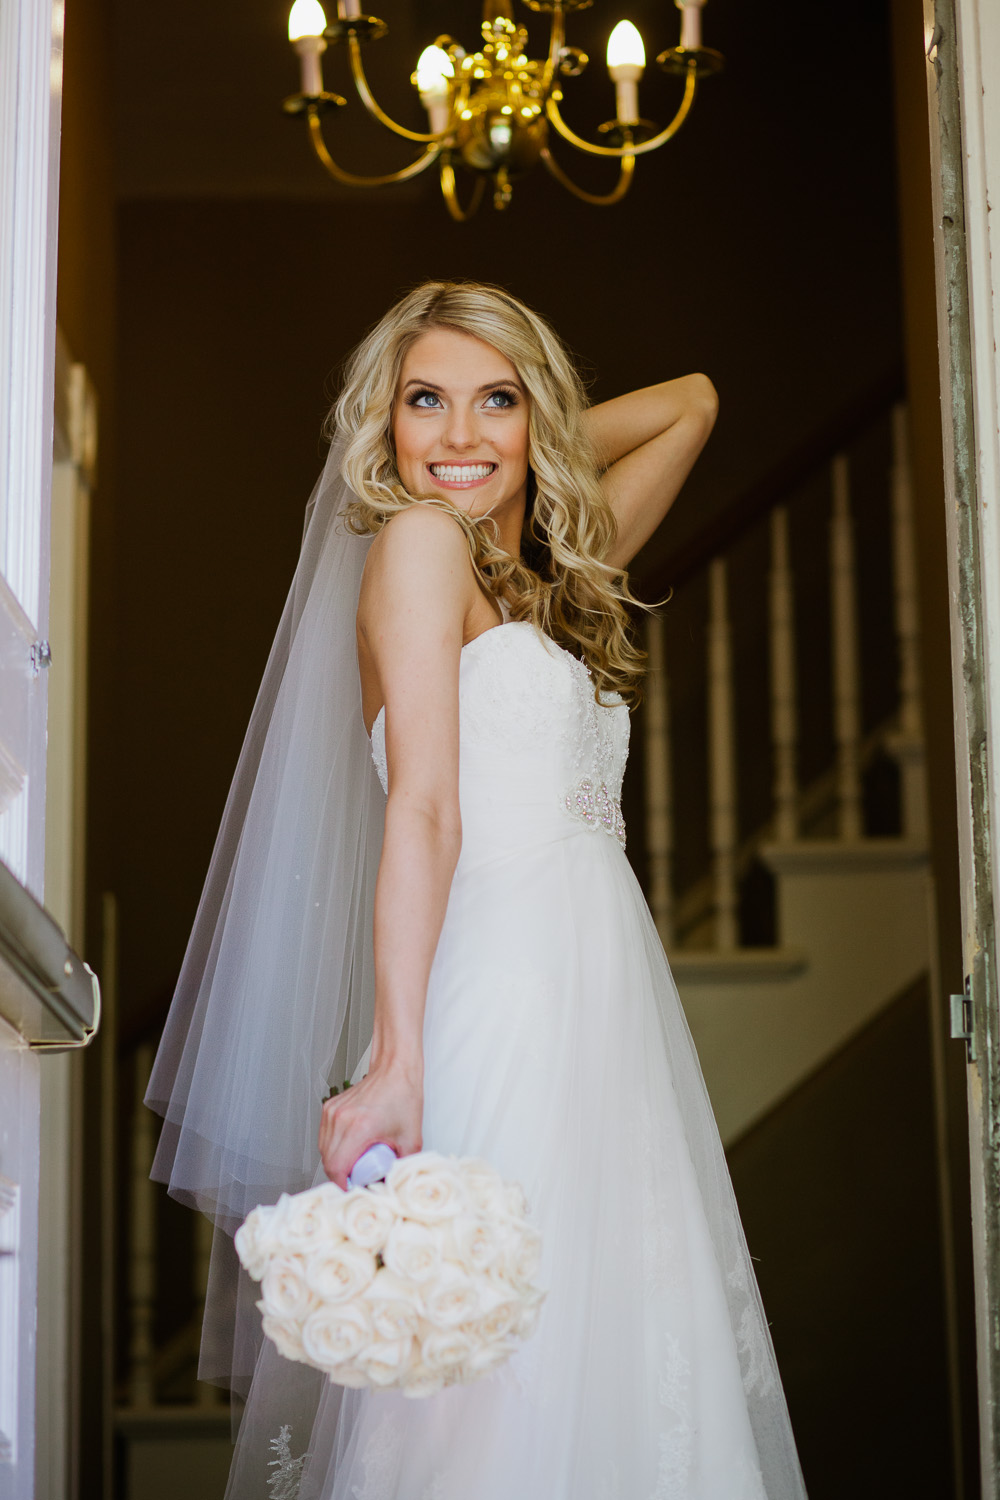 sterling-hotel-sacramento-california-downtown-wedding-bride-happiness-lixxim